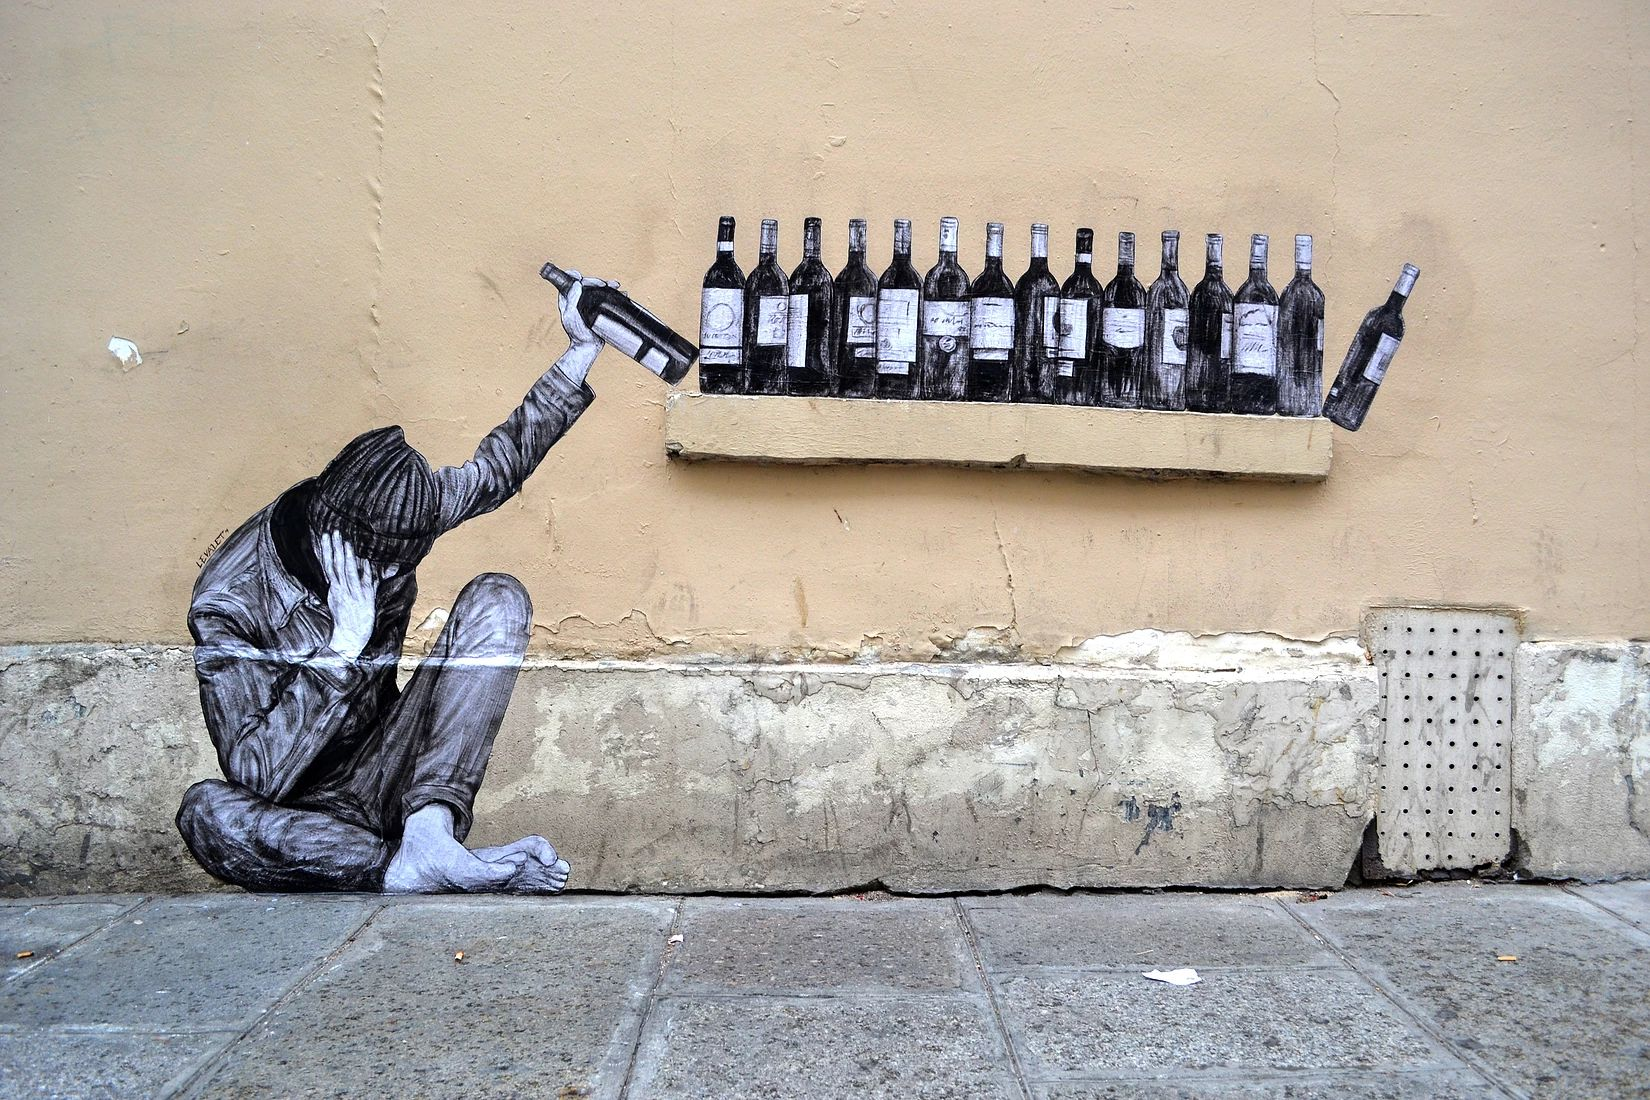 Humorous and Interactive Street Art in Paris